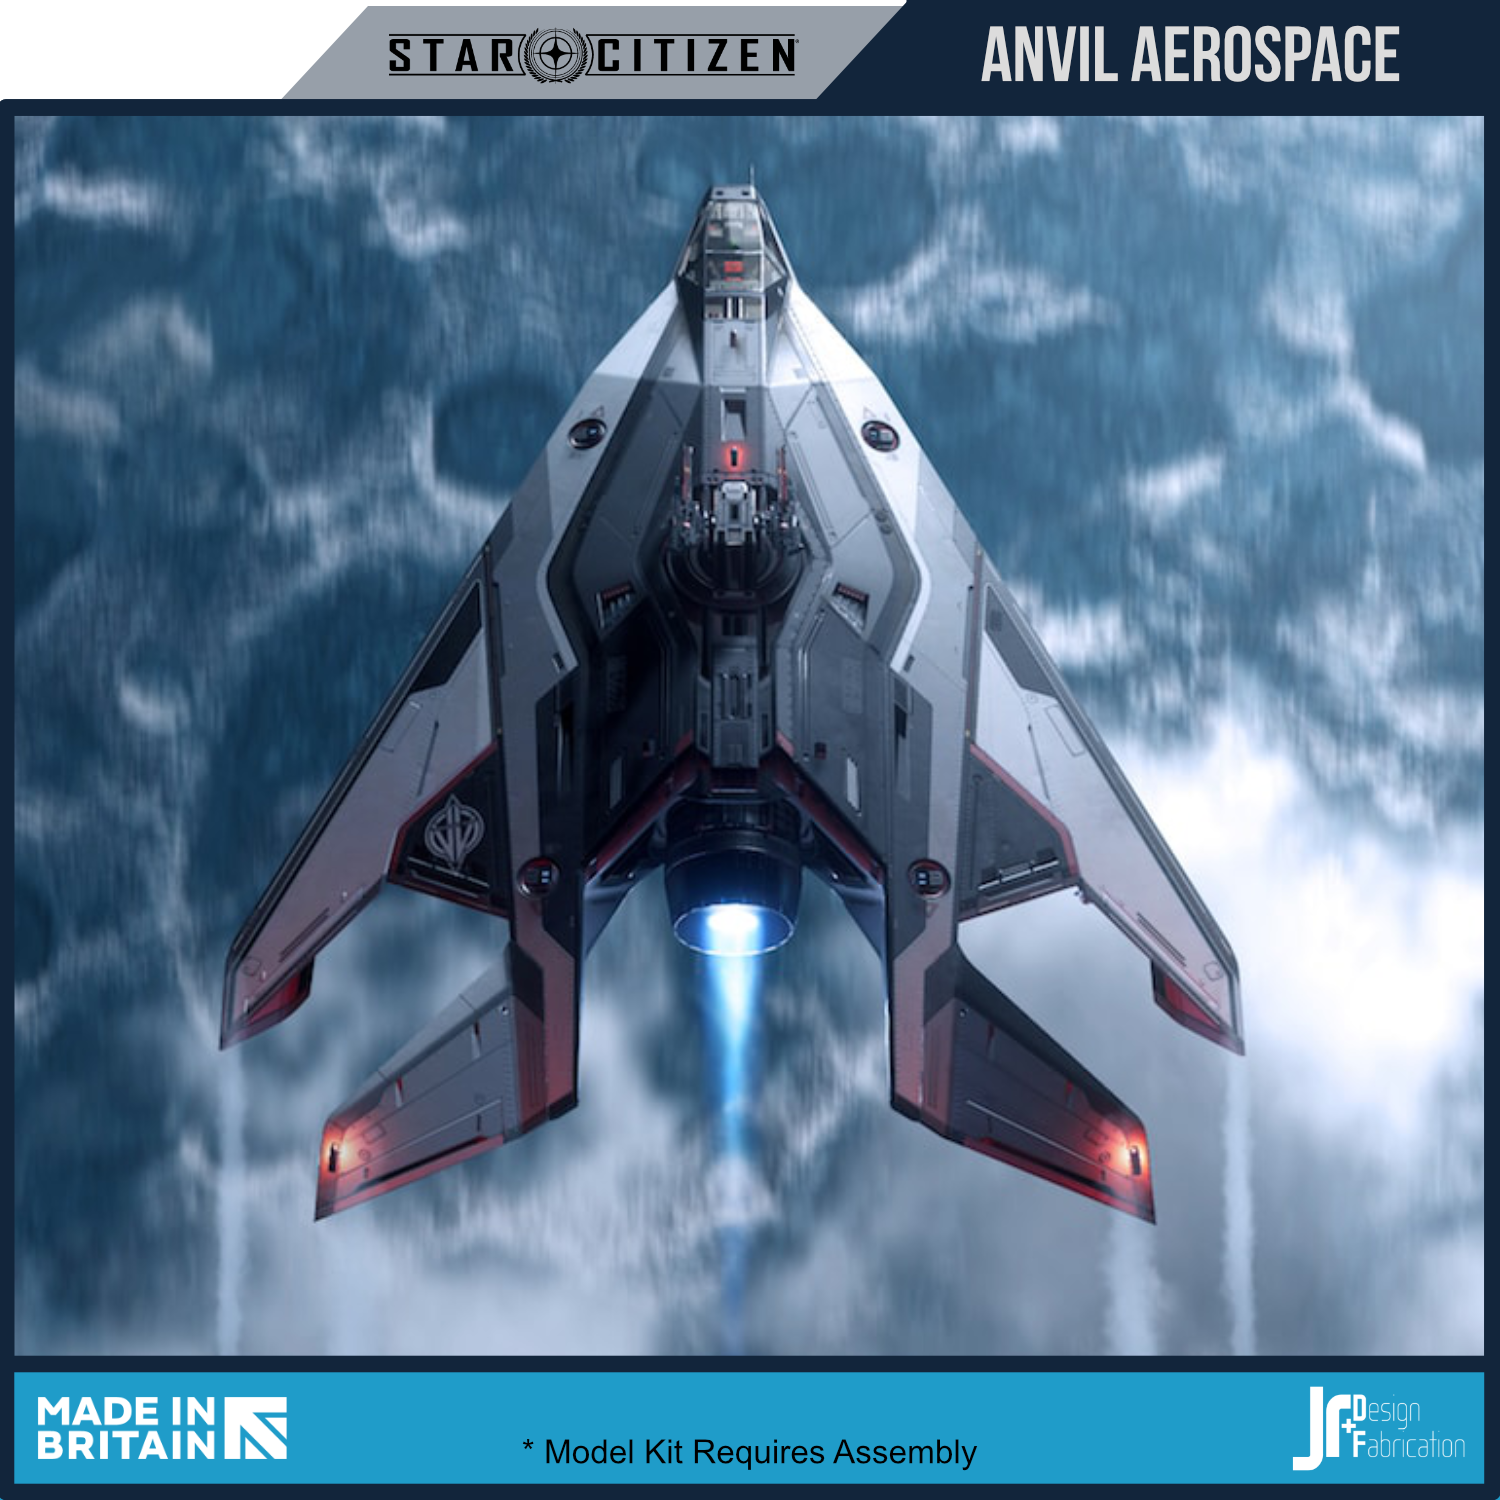 Anvil Arrow Product Image 04.png